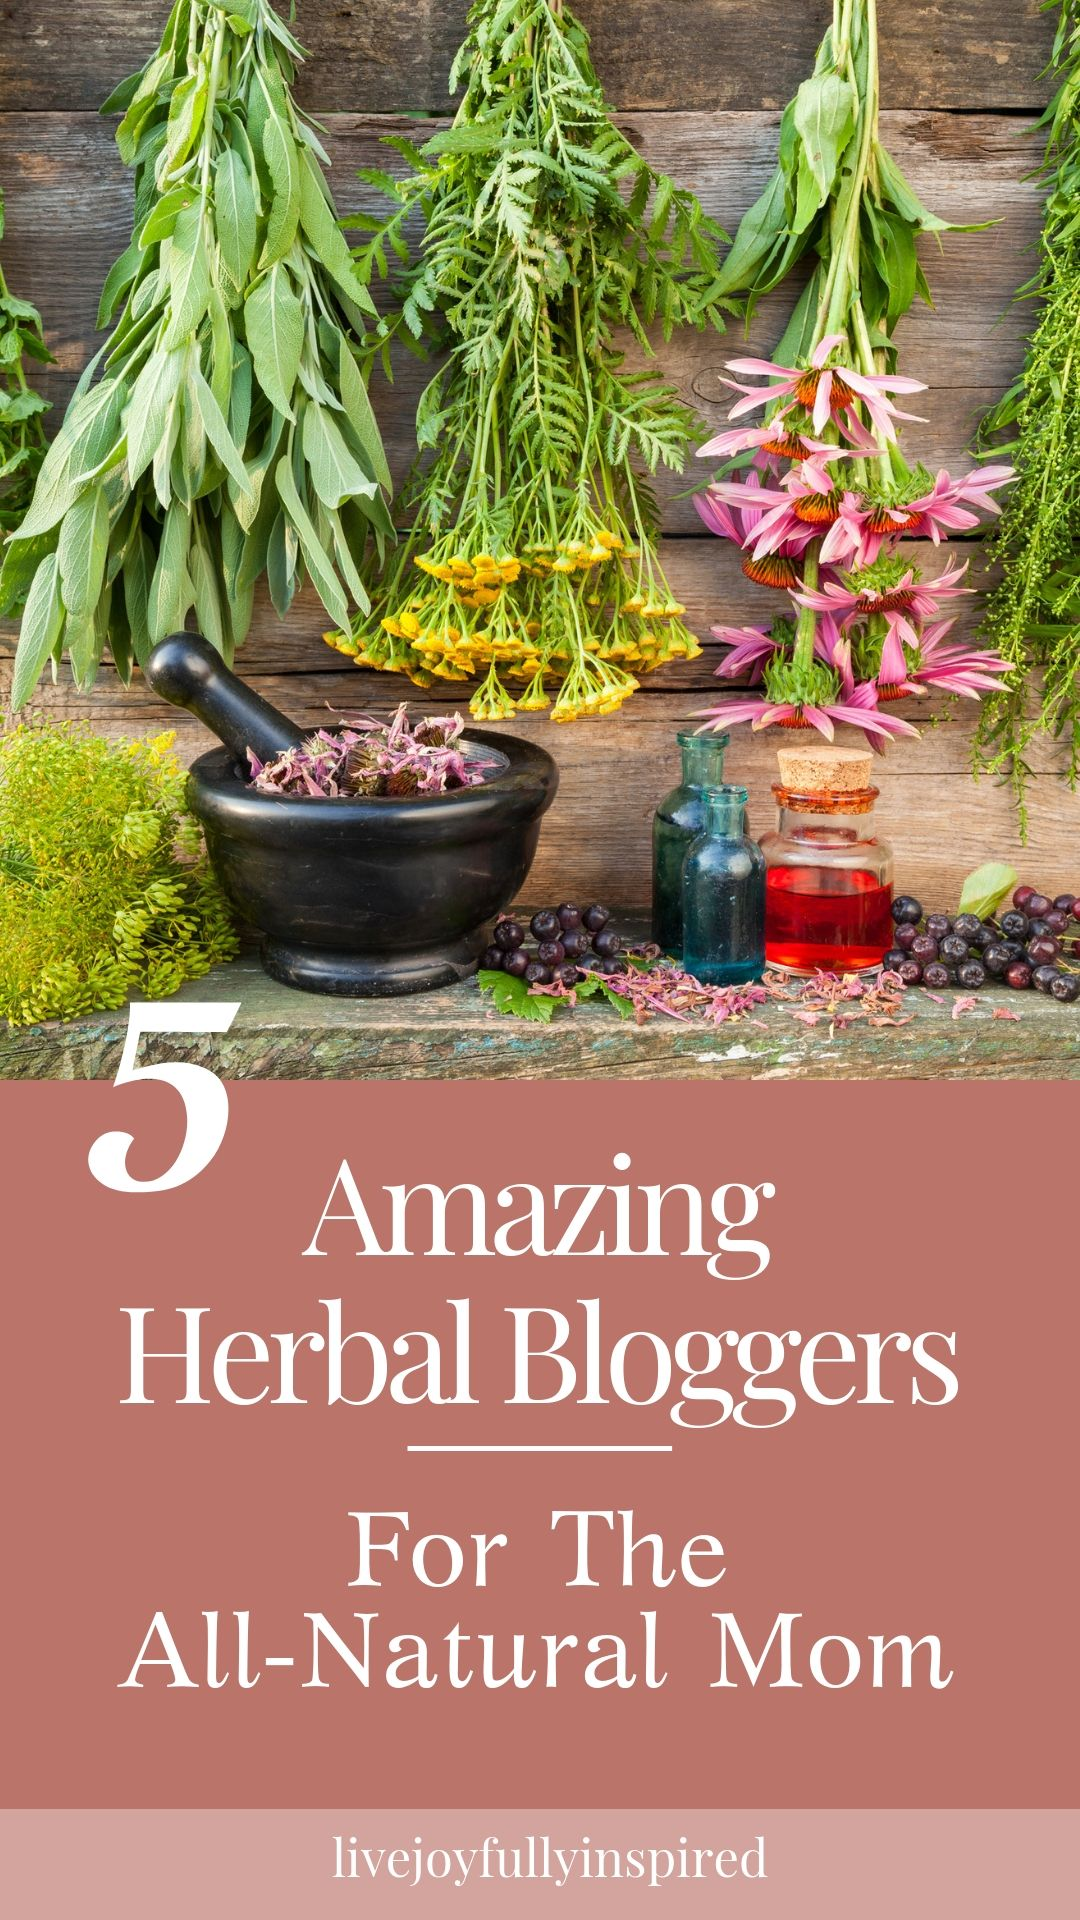 When it comes to creating and living an all-natural lifestyle, these bloggers excel in knowledge and abilities. This list contains 5 favorite herbal bloggers that every all-natural mom should follow. These ladies are amazing herbalists and create incredible DIY body products as well as teach you all you need to know about herbs, infusions, and making your own herbal remedies. #herbalblogger #diyremedies #herbs